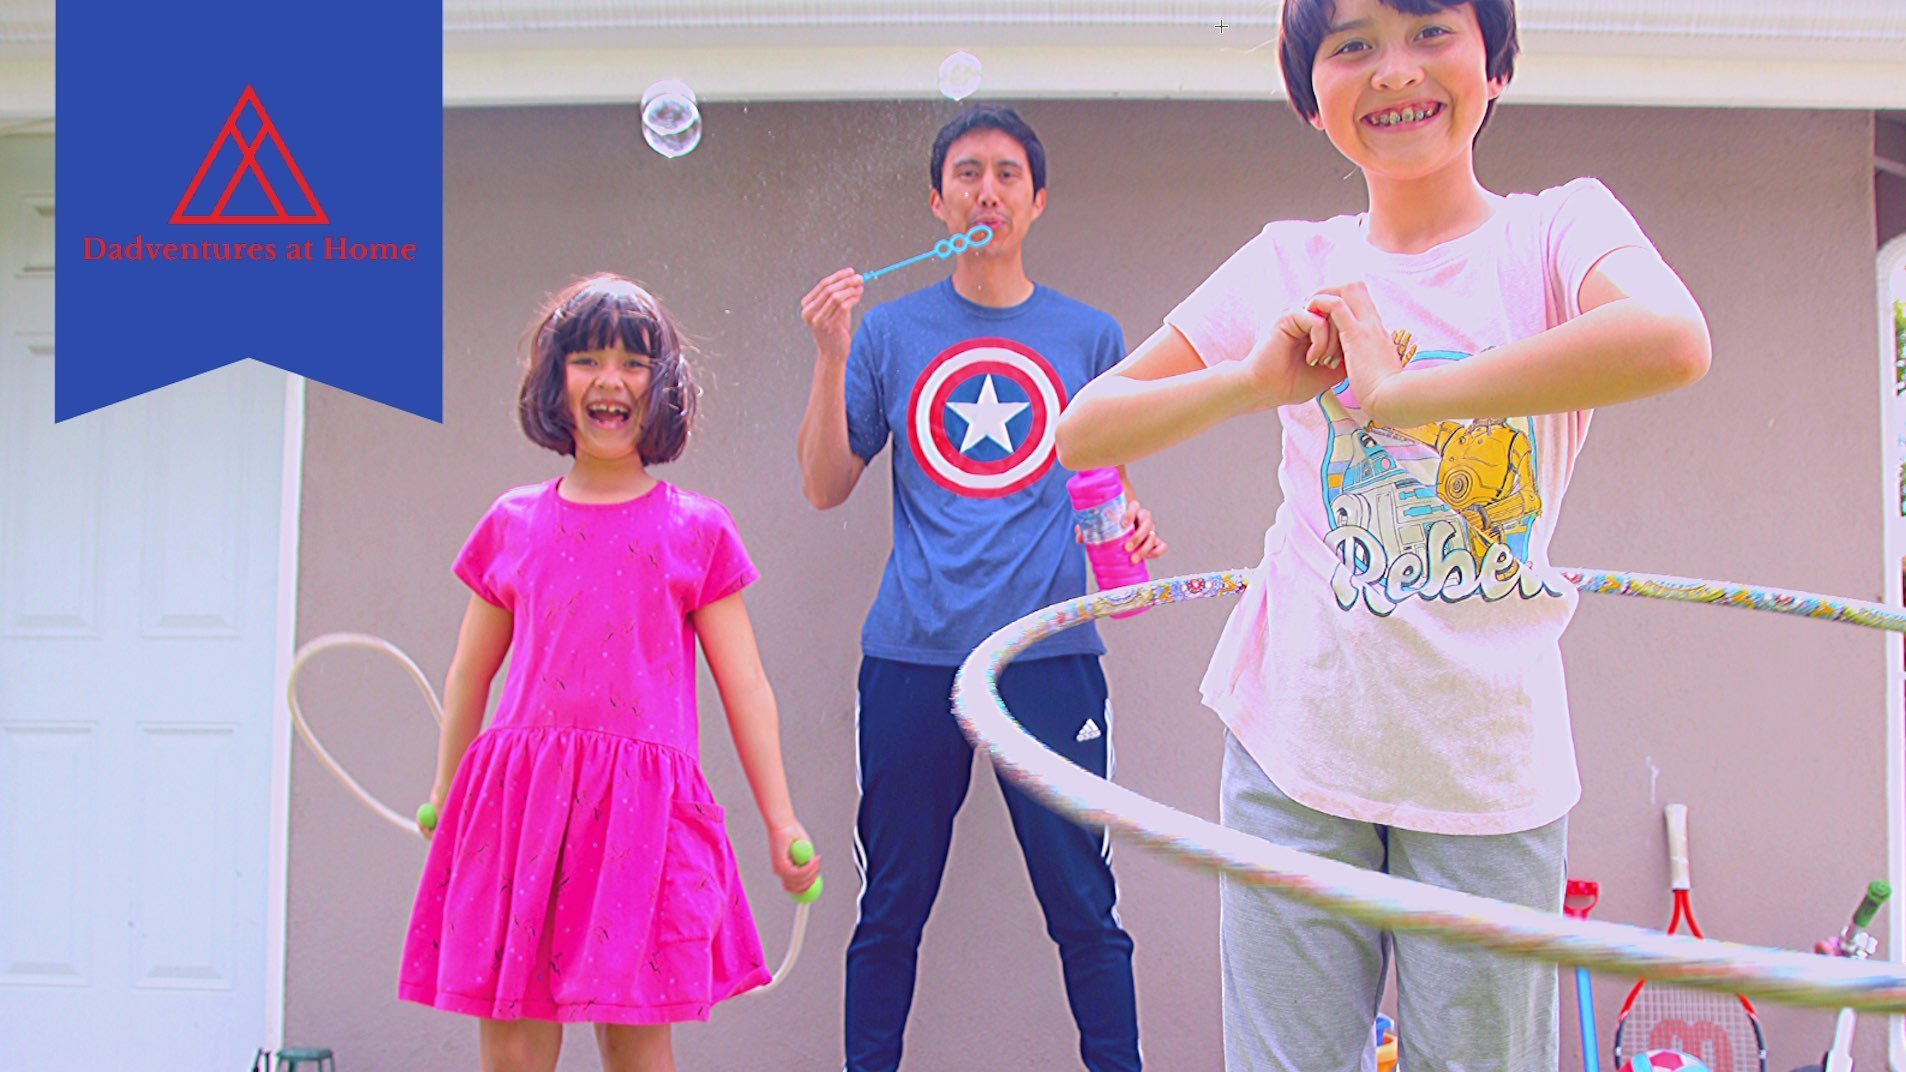 Dadventures Launches Fun And Easy Family Activities That You Can Do At Home